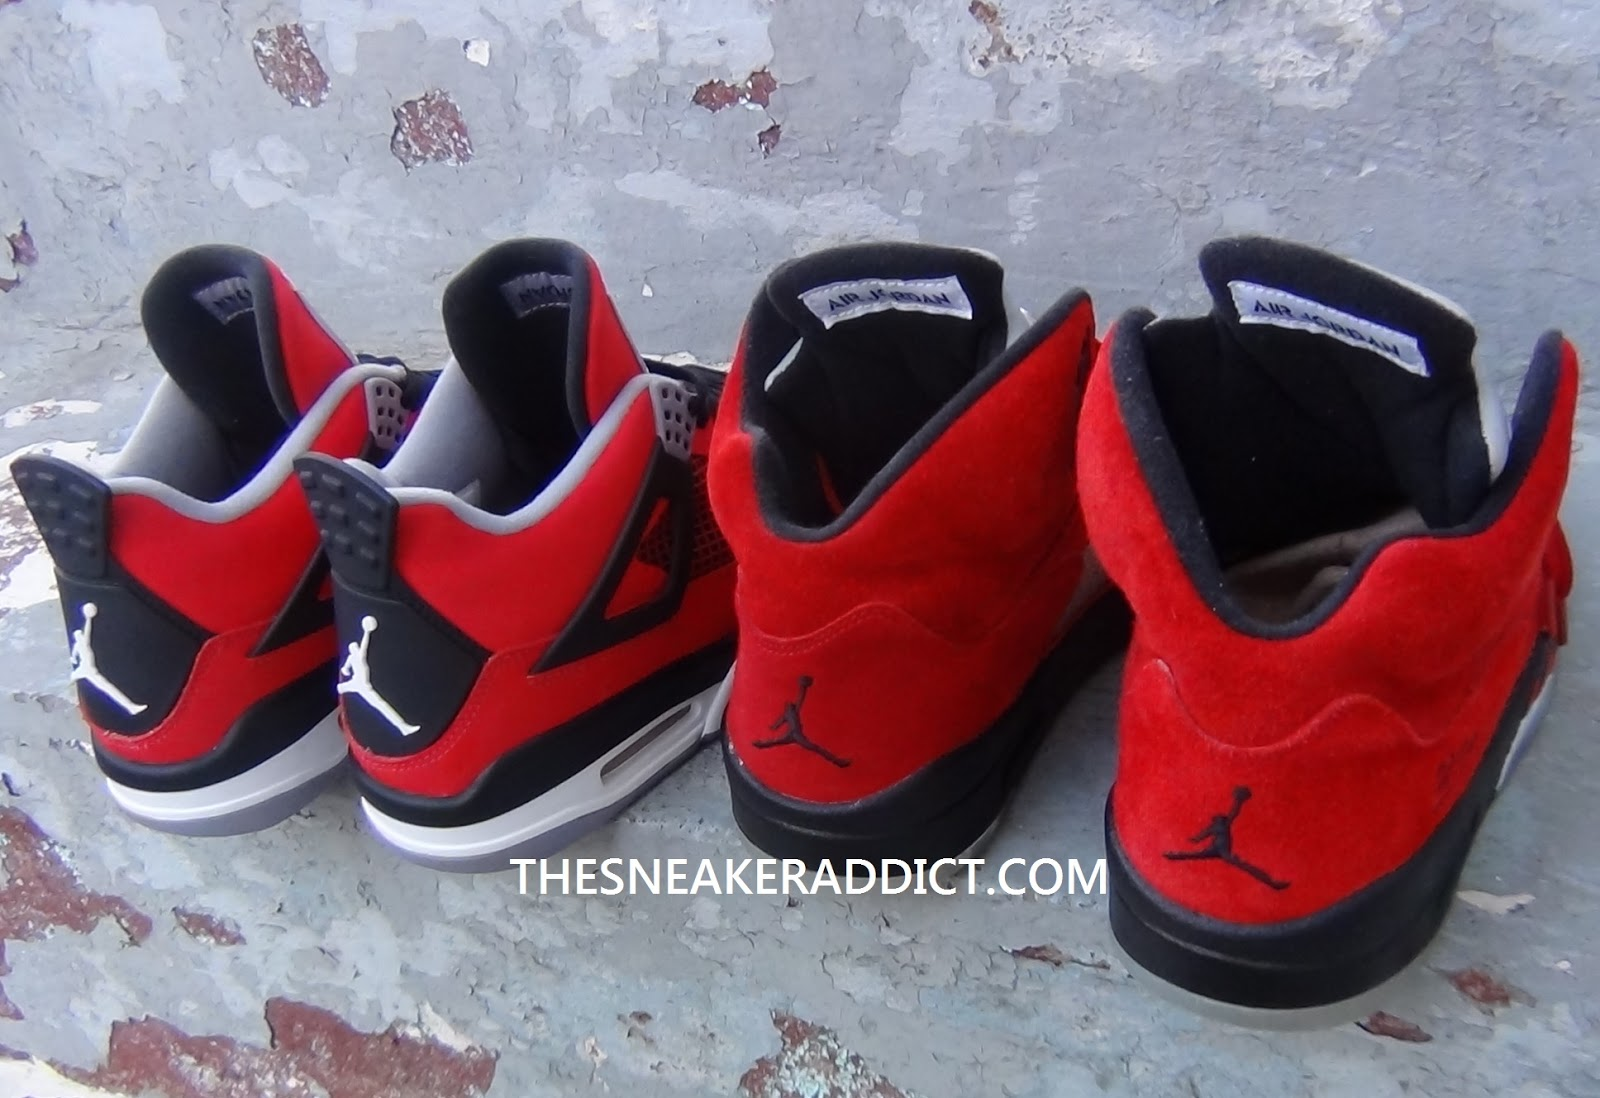 3dc8ebd1914fbd Here is some photos we snapped of the Air Jordan Toro Bravo 4   5 Sneakers